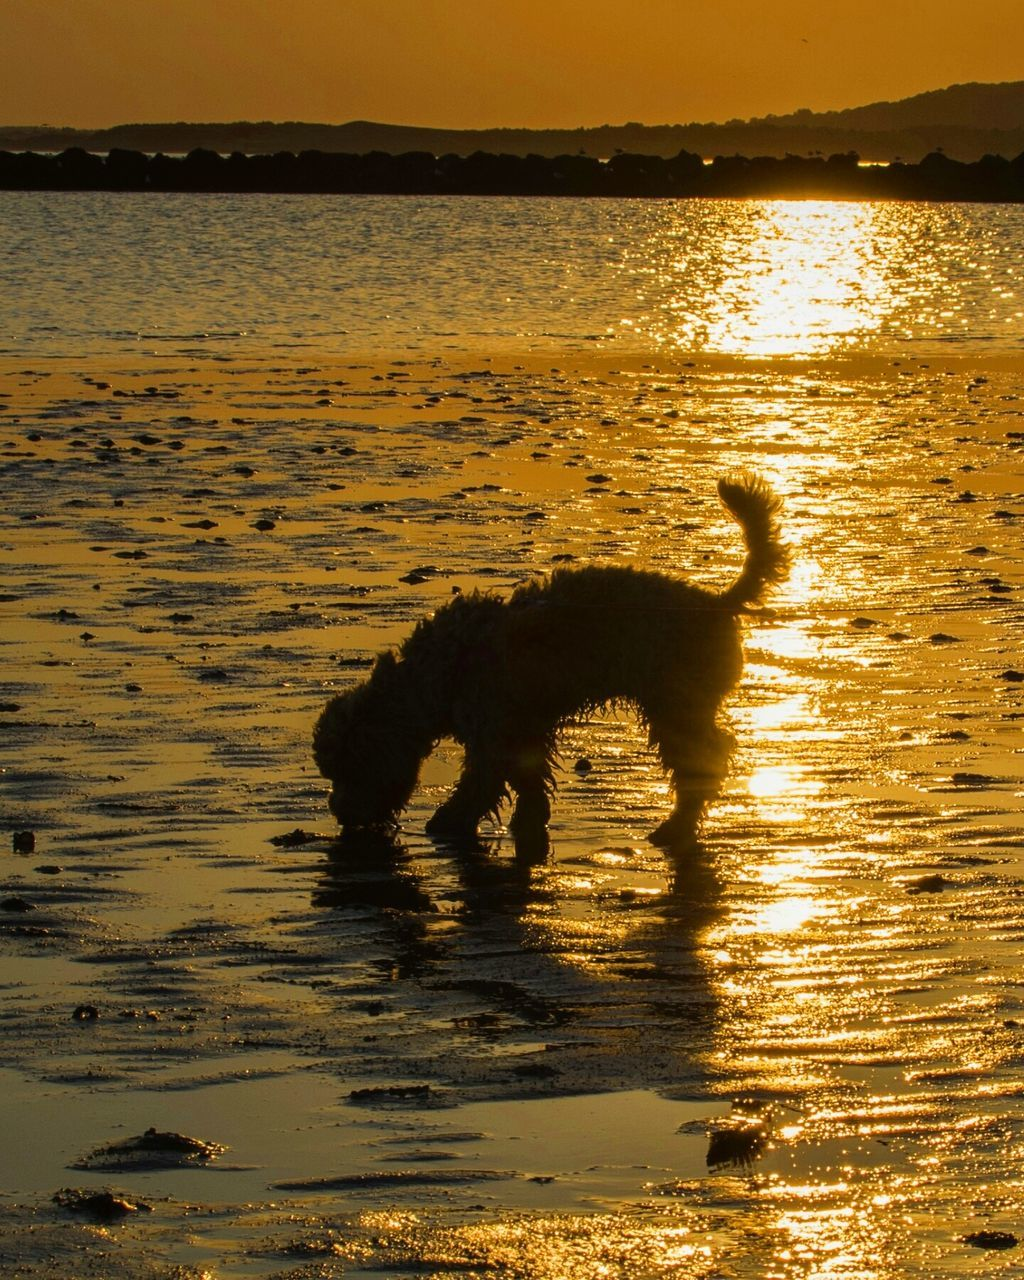 sunset, water, silhouette, one animal, nature, animal themes, sea, reflection, mammal, motion, beauty in nature, side view, no people, outdoors, sunlight, dog, scenics, pets, domestic animals, sky, day